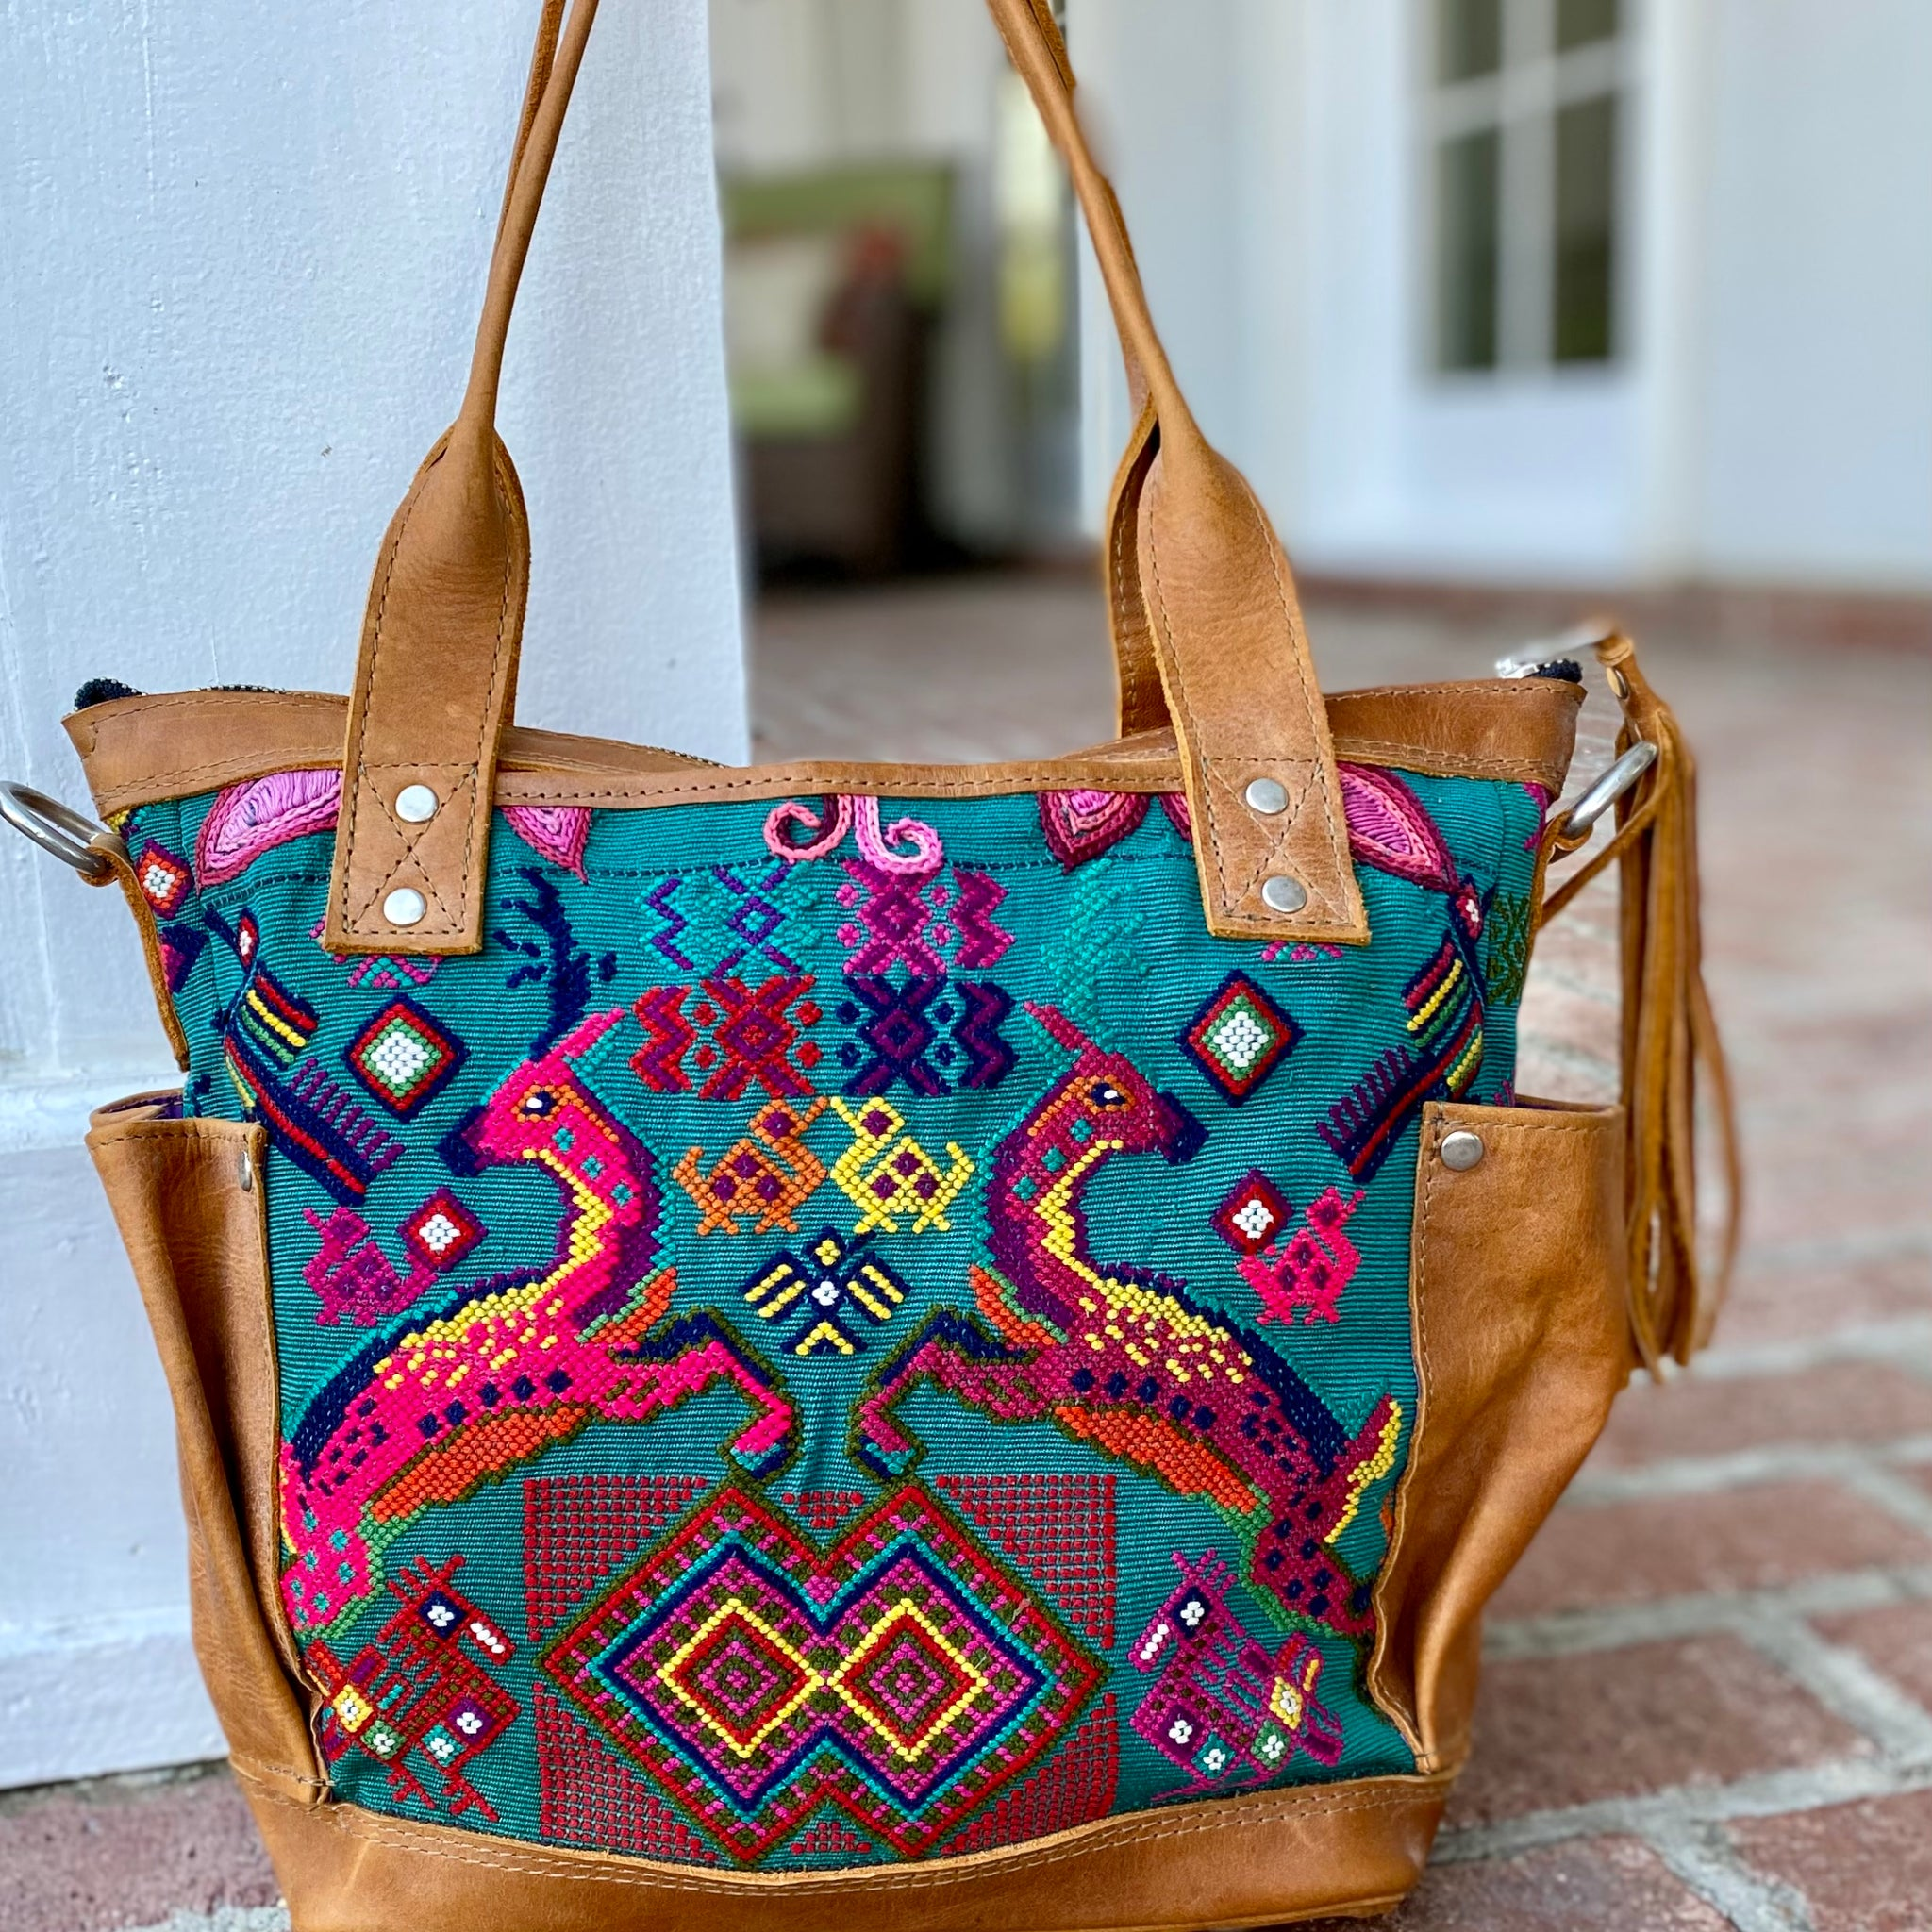 Vintage Deer Huipil Bag with Luxury Leather